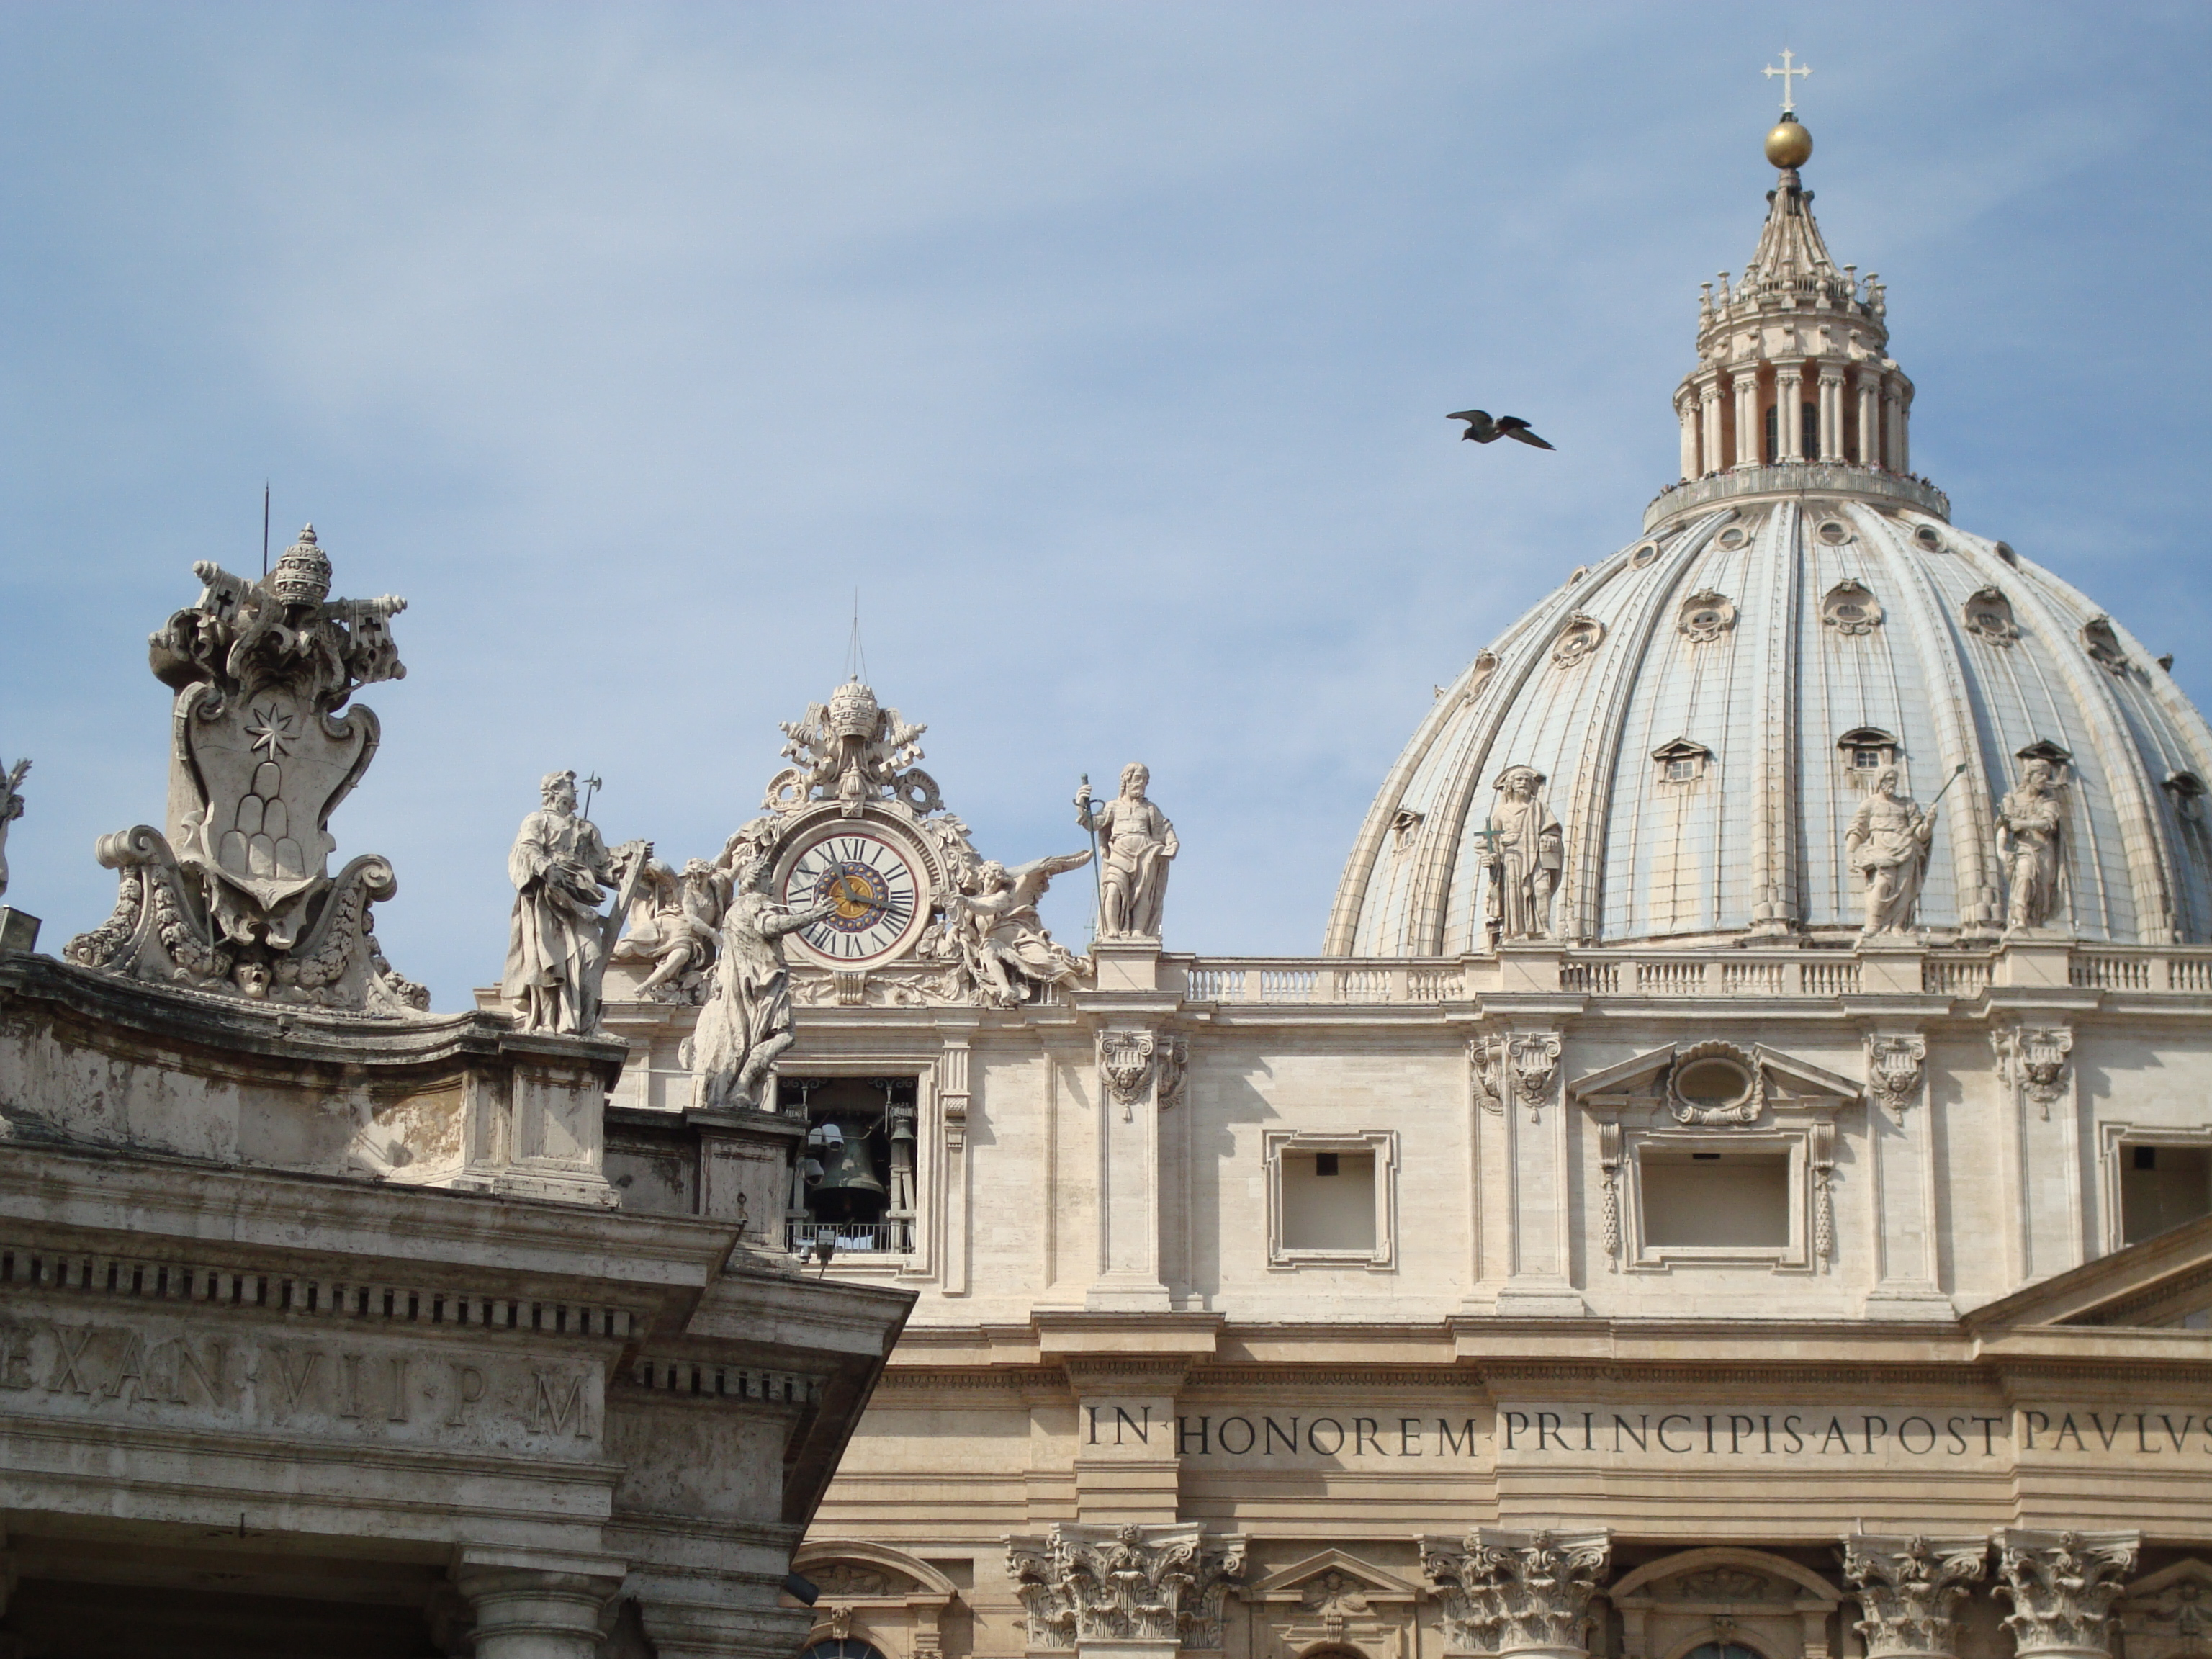 St. peters basilica, rome photo